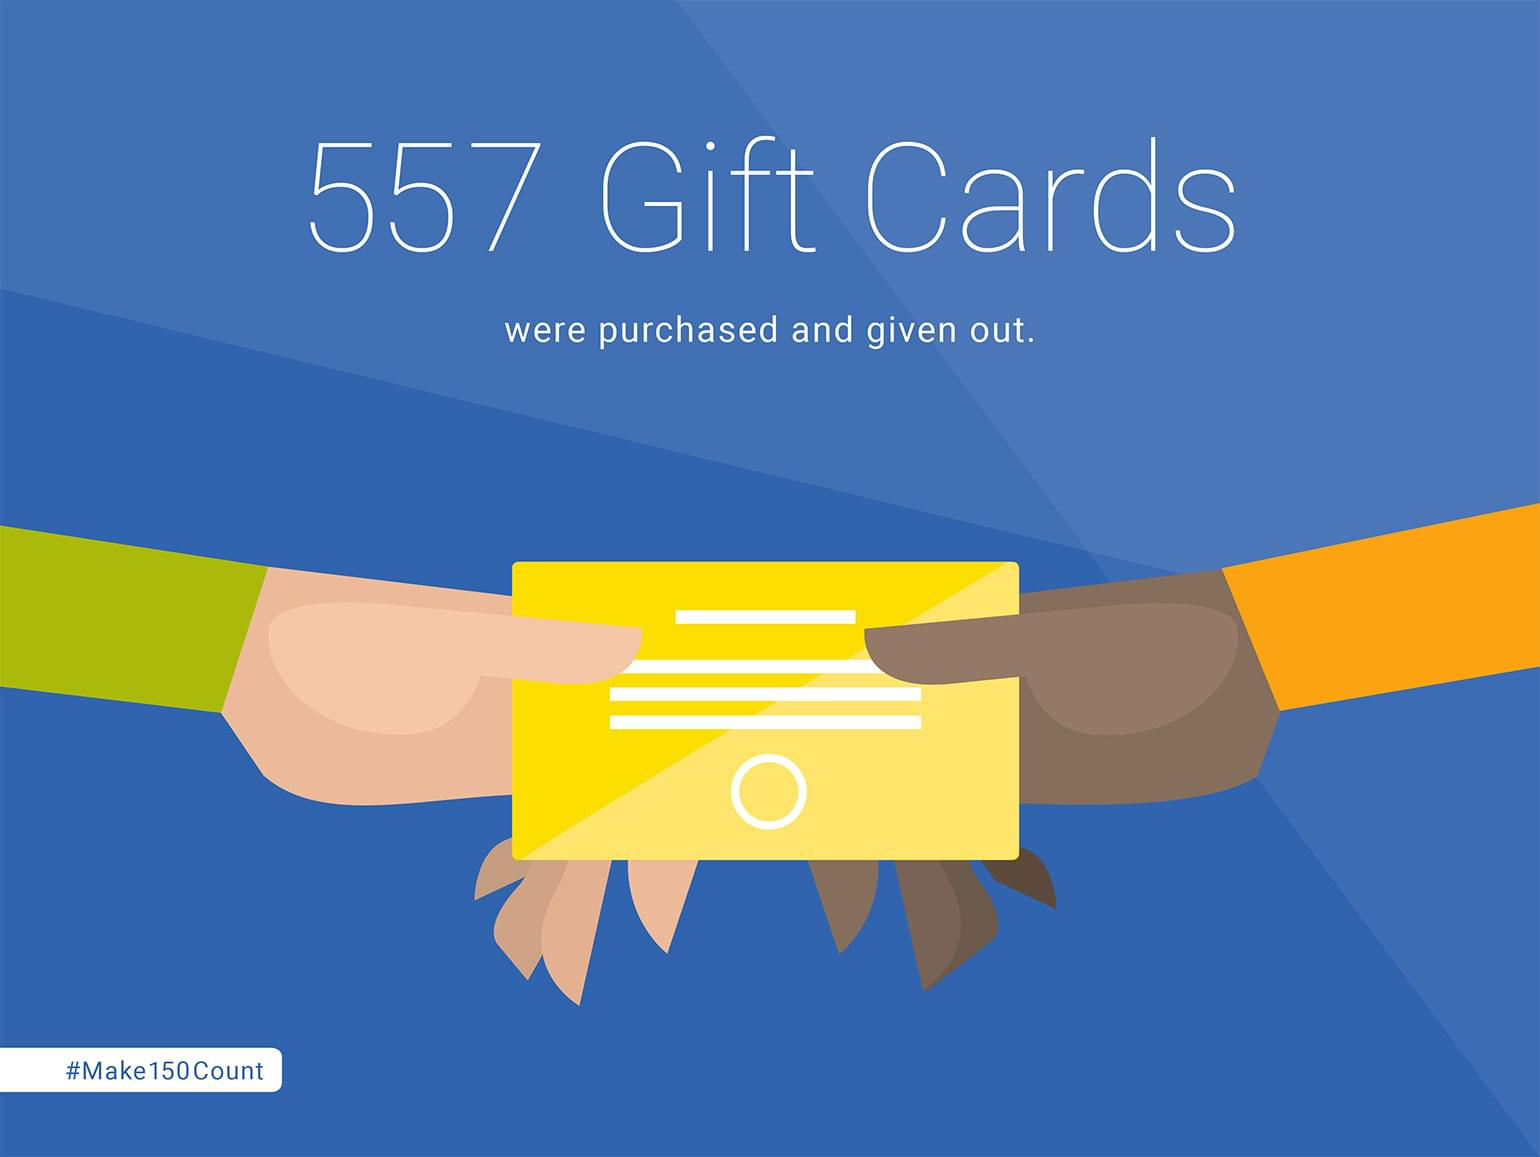 557 Gift Cards were purchased and given out.